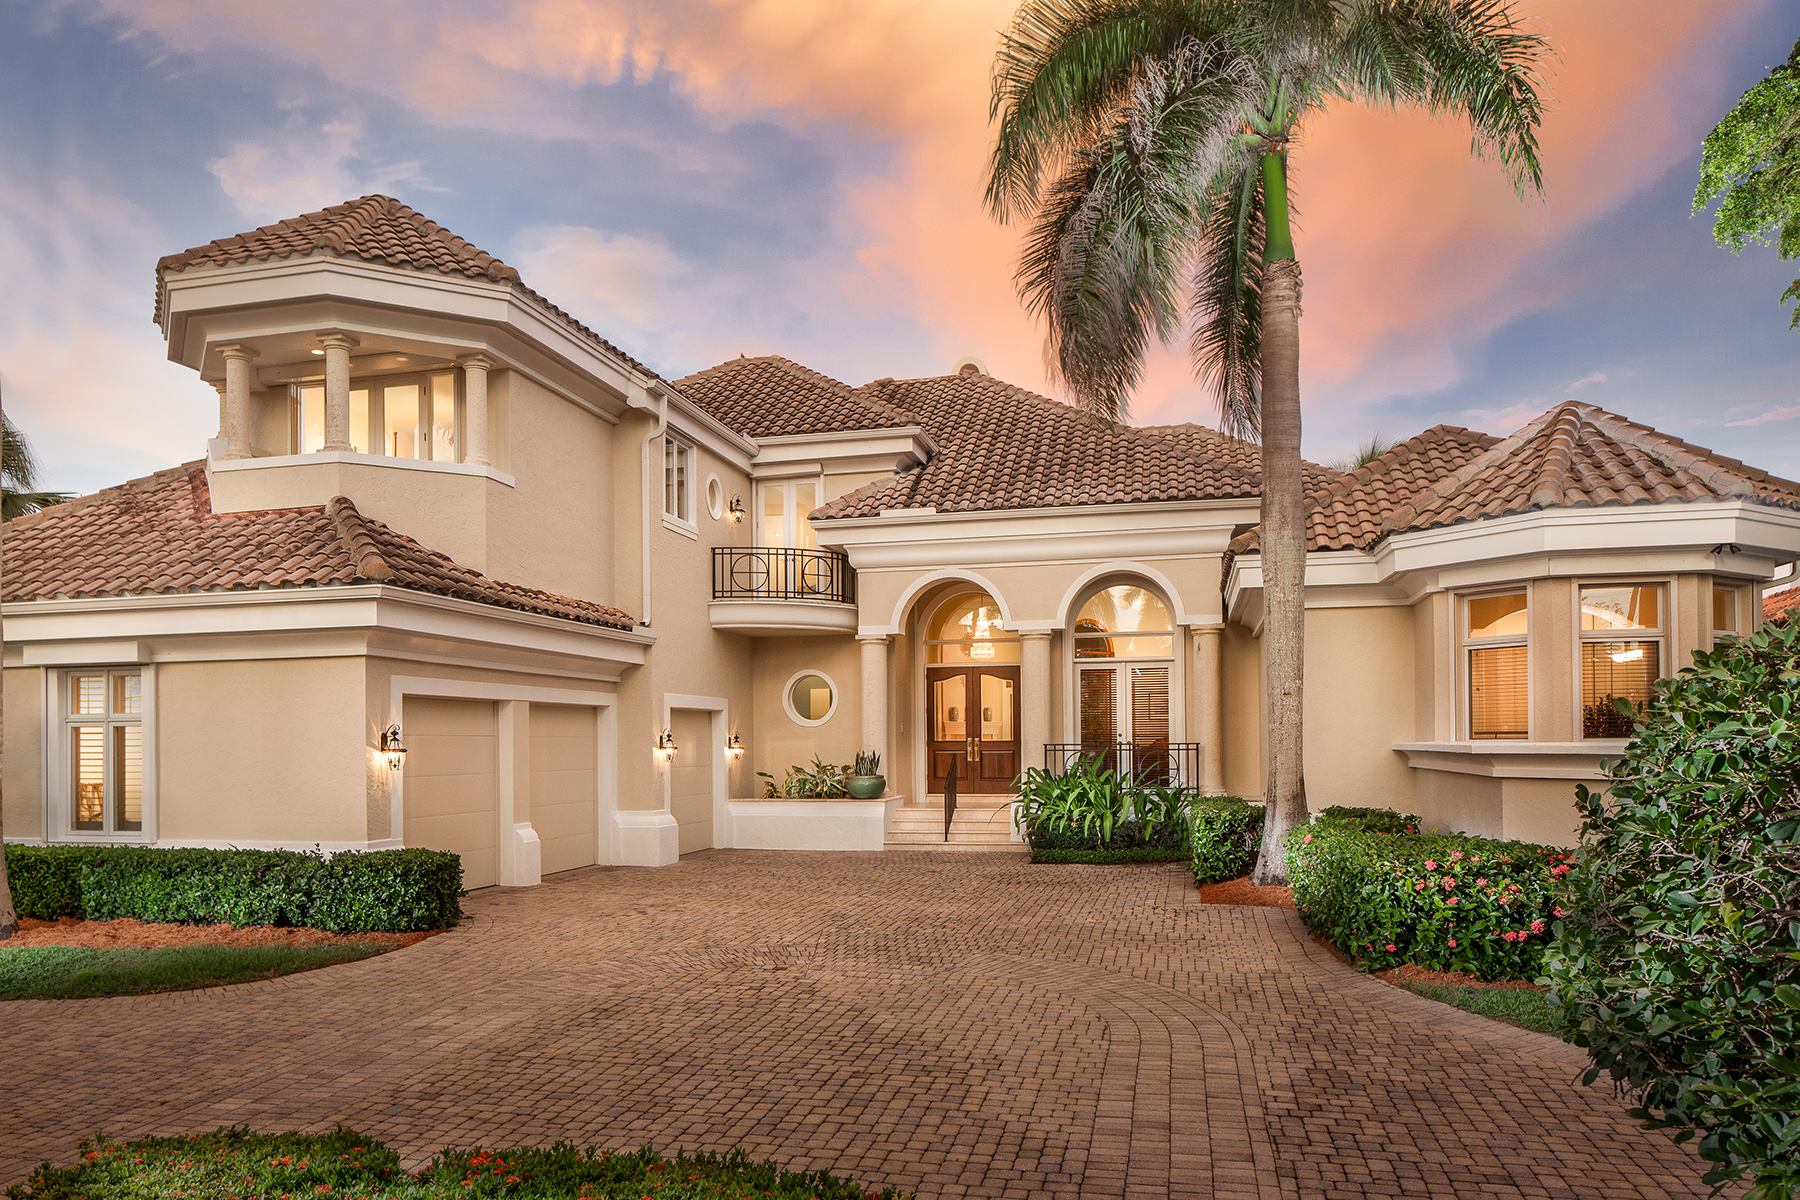 Single Family Home for Sale at PORT ROYAL - CUTLASS COVE 4225 Gordon Dr Naples, Florida, 34102 United States